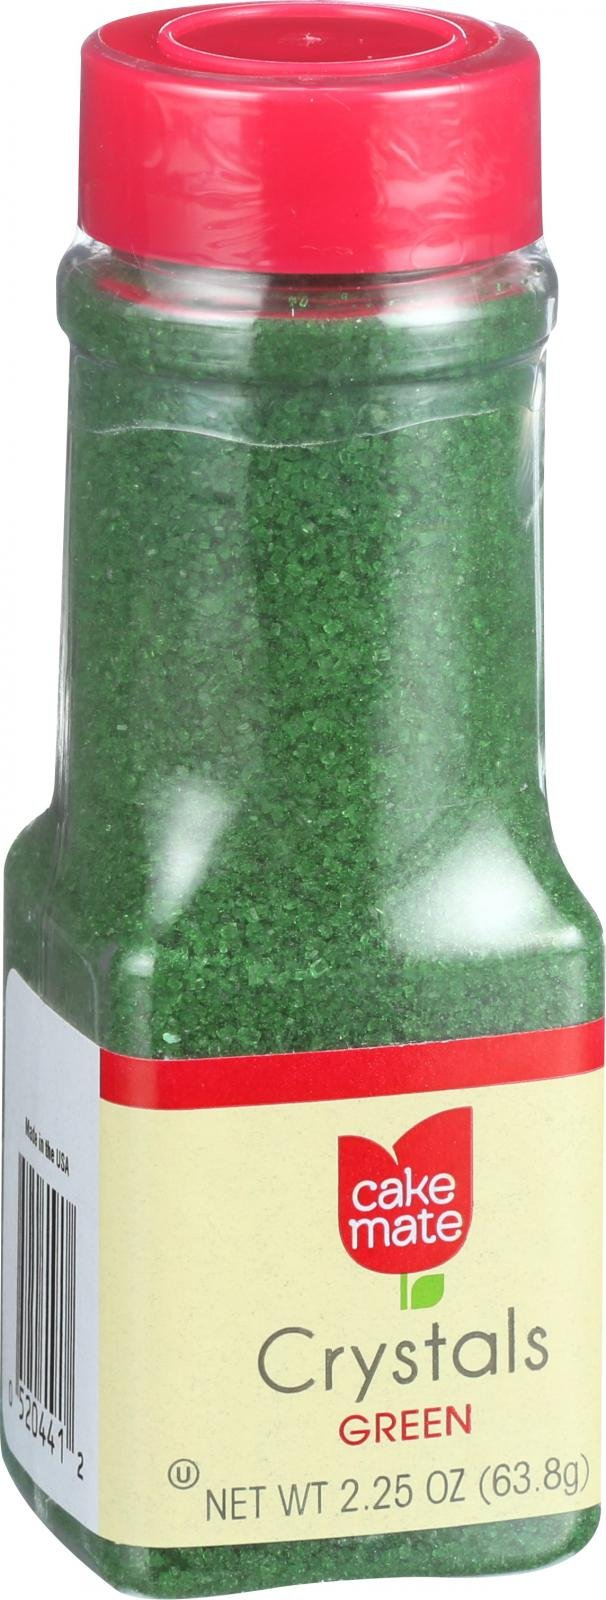 Cake Mate Decorating Decors - Crystals - Green - 2.25 oz - Case of 6